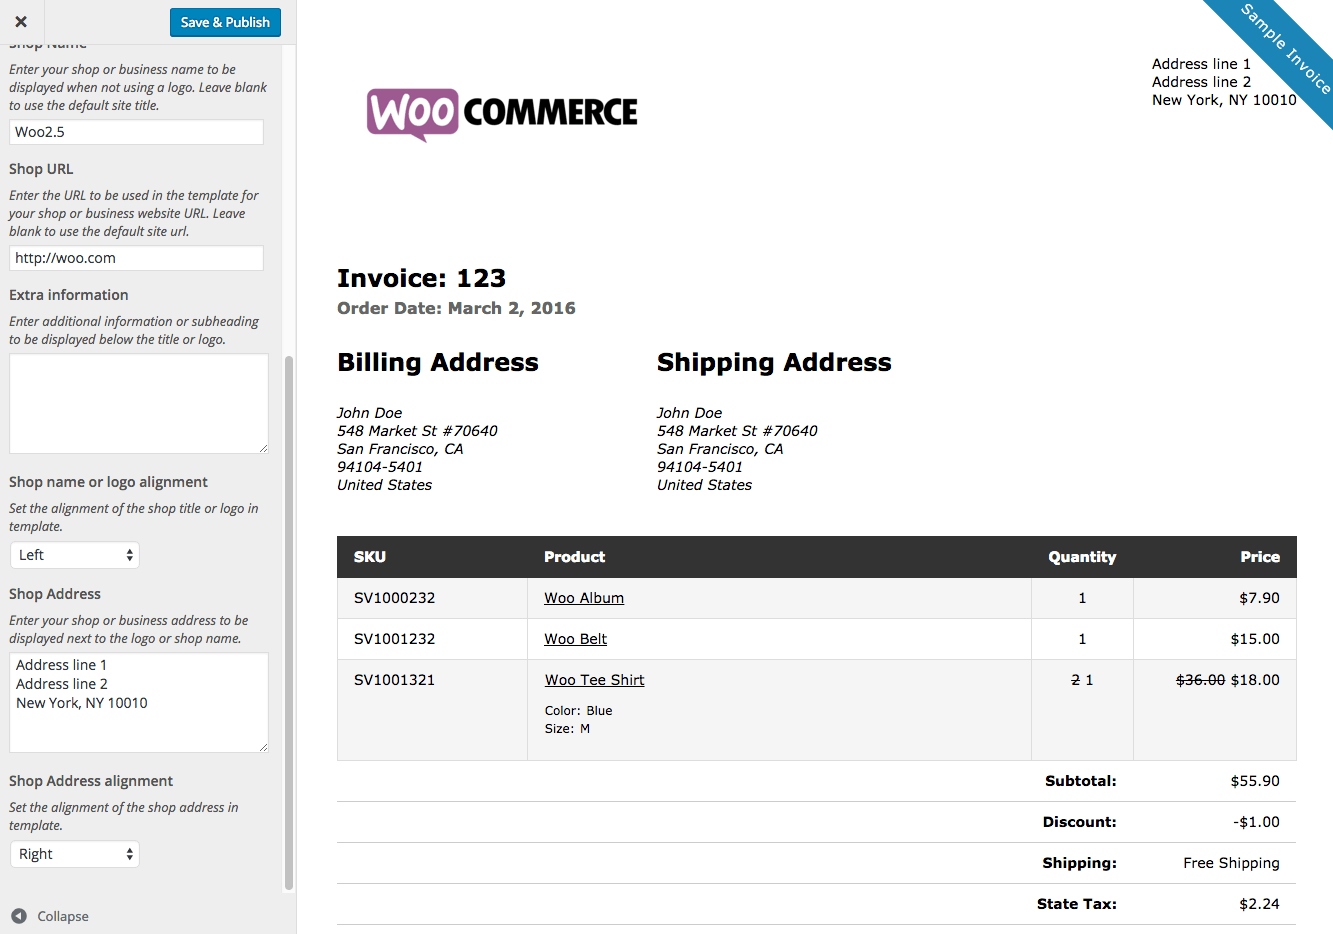 Hius  Terrific Print Invoices Amp Packing Lists  Woocommerce With Fair Woocommerce Print Invoices  Packing Lists Customizer With Beauteous Invoice Versus Msrp Also Numbering Invoices In Addition Invoice Price Meaning And Invoice Templates For Pages As Well As Parts Of An Invoice Additionally Consulting Invoice Templates From Woocommercecom With Hius  Fair Print Invoices Amp Packing Lists  Woocommerce With Beauteous Woocommerce Print Invoices  Packing Lists Customizer And Terrific Invoice Versus Msrp Also Numbering Invoices In Addition Invoice Price Meaning From Woocommercecom